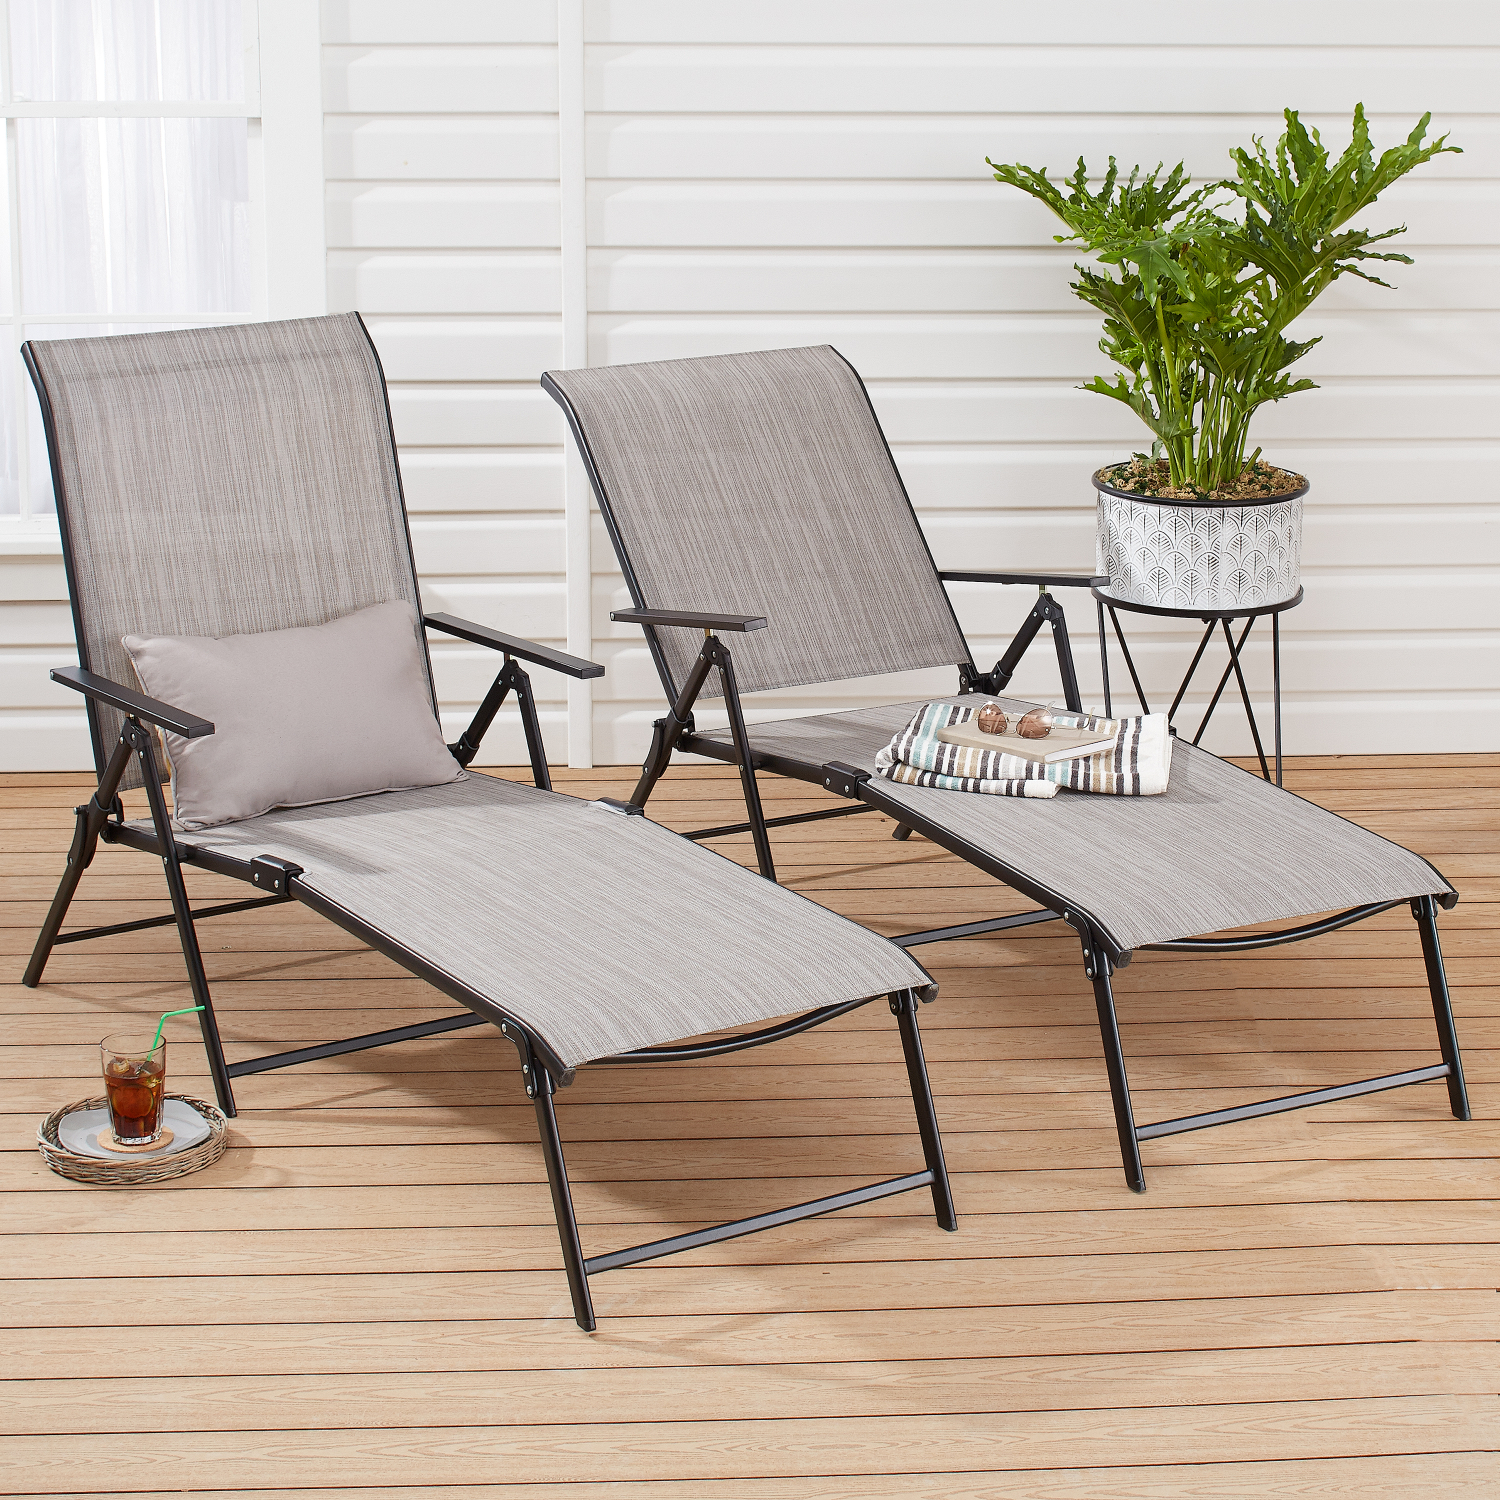 Excellent Details About Outdoor Chaise Lounge Set Of 2 Grey Sling Mesh Pool Patio Adjustable Recliner Ocoug Best Dining Table And Chair Ideas Images Ocougorg